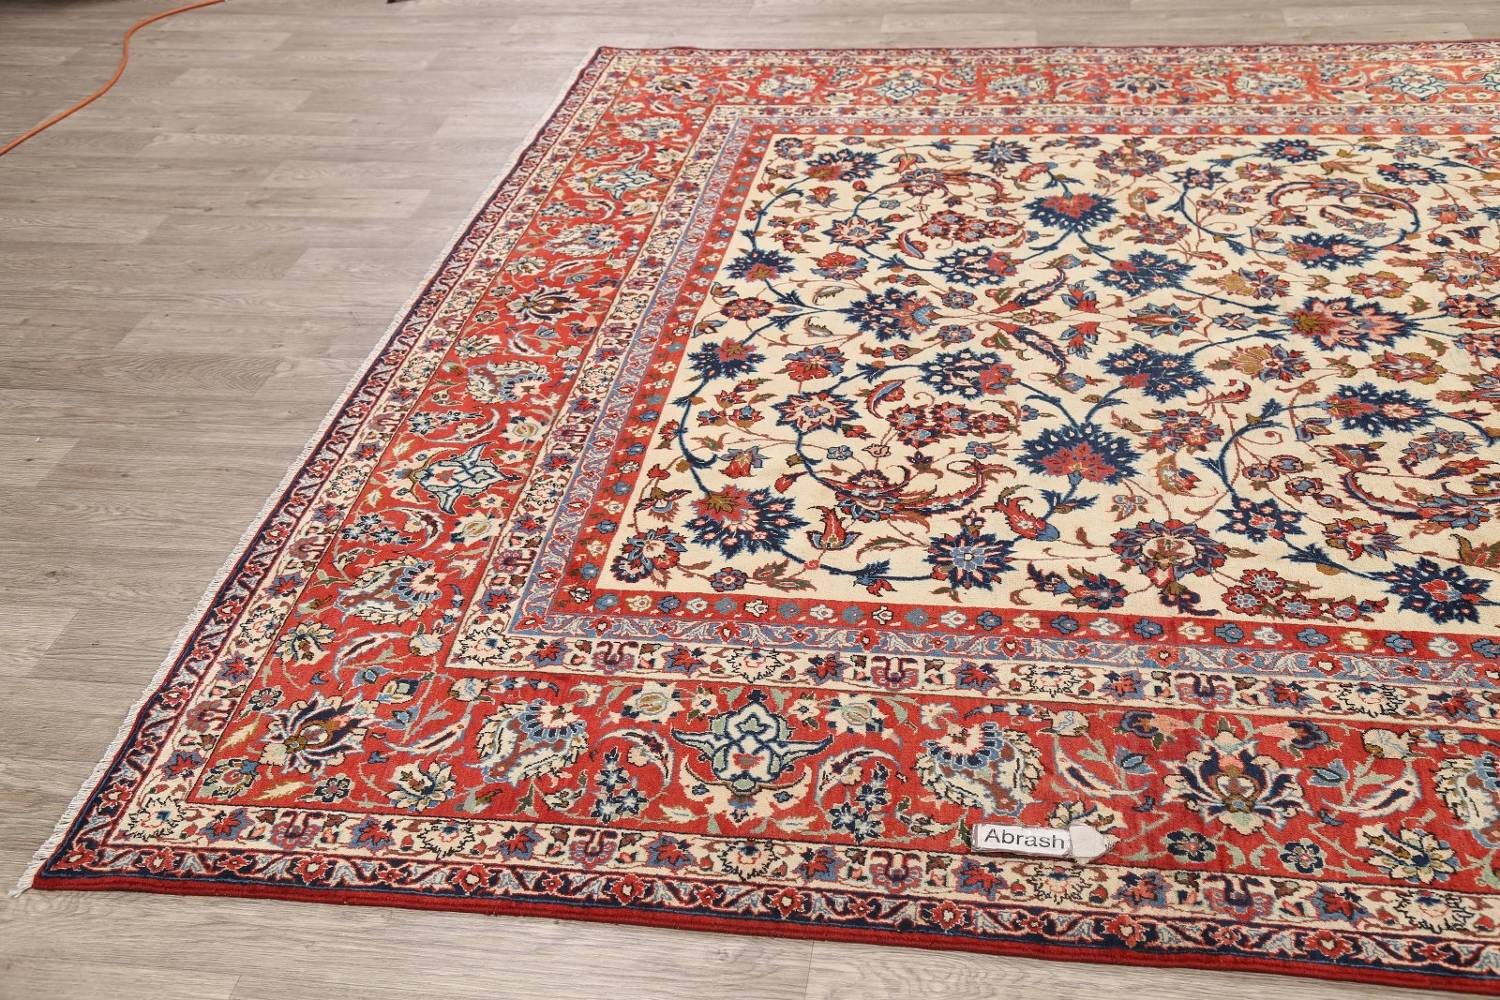 Floral 9x13 Isfahan Persian Area Rug image 17